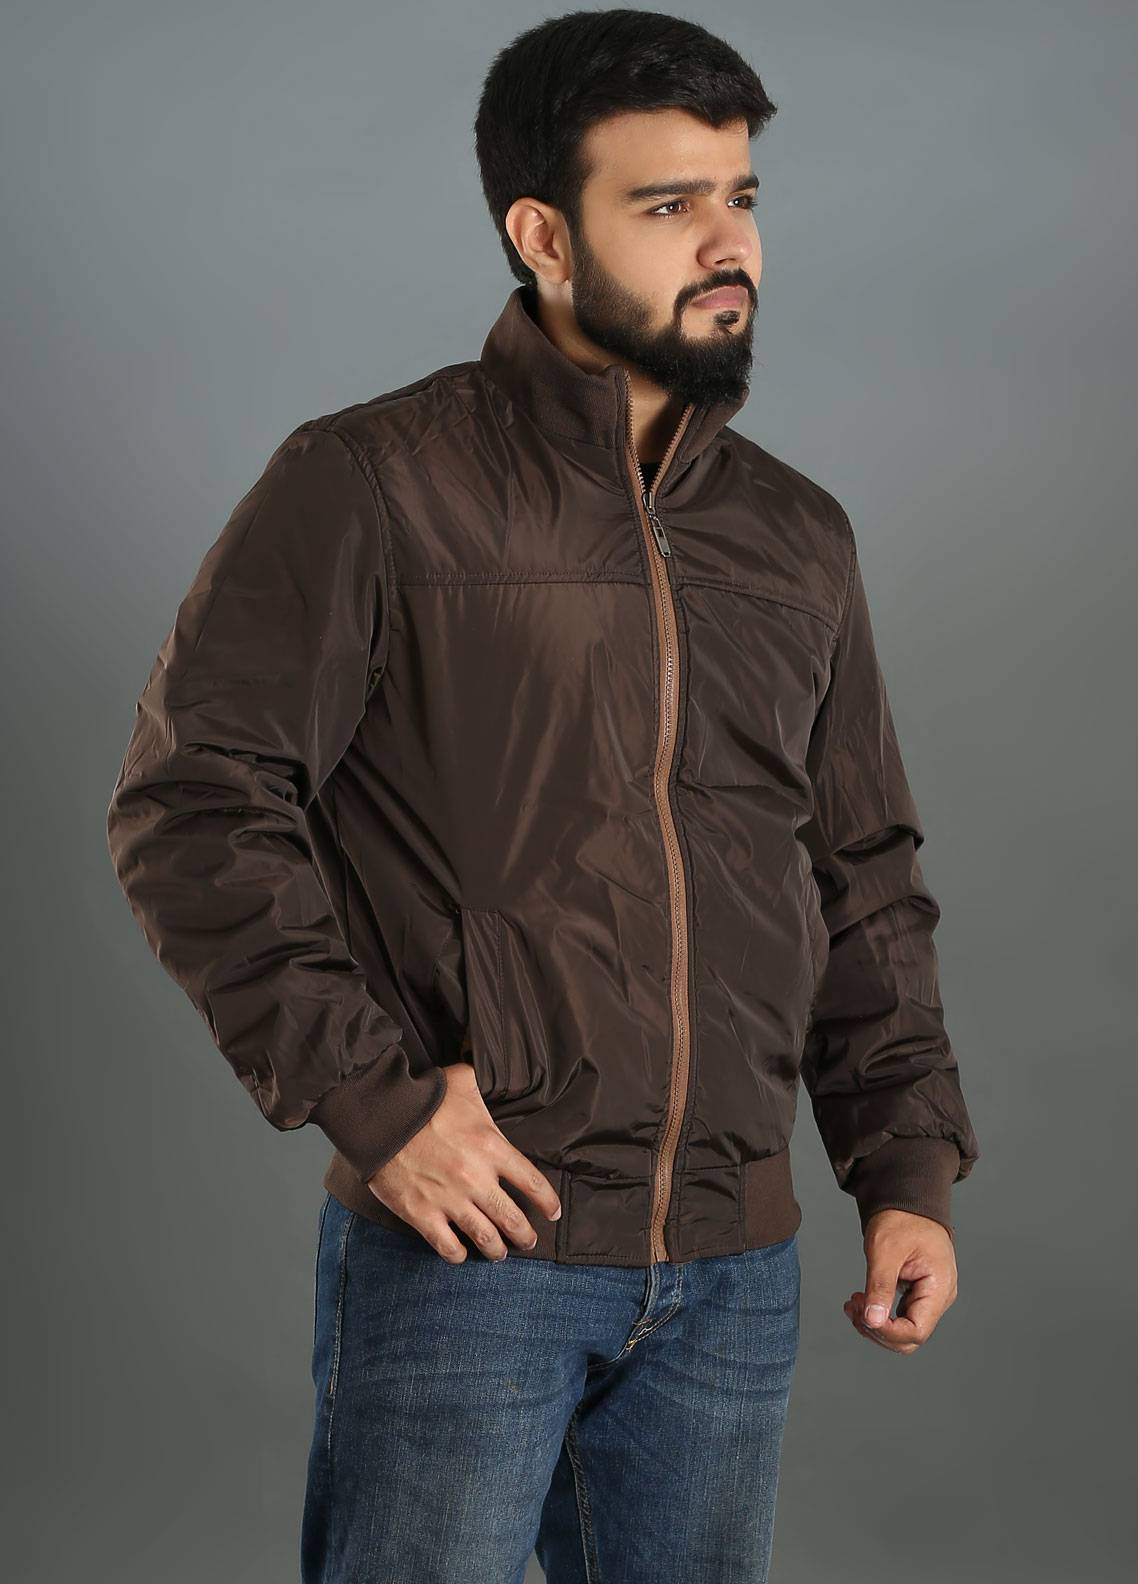 Sanaulla Exclusive Range Parachute Double Sided Jackets for Men - Two Color SAM18J 03